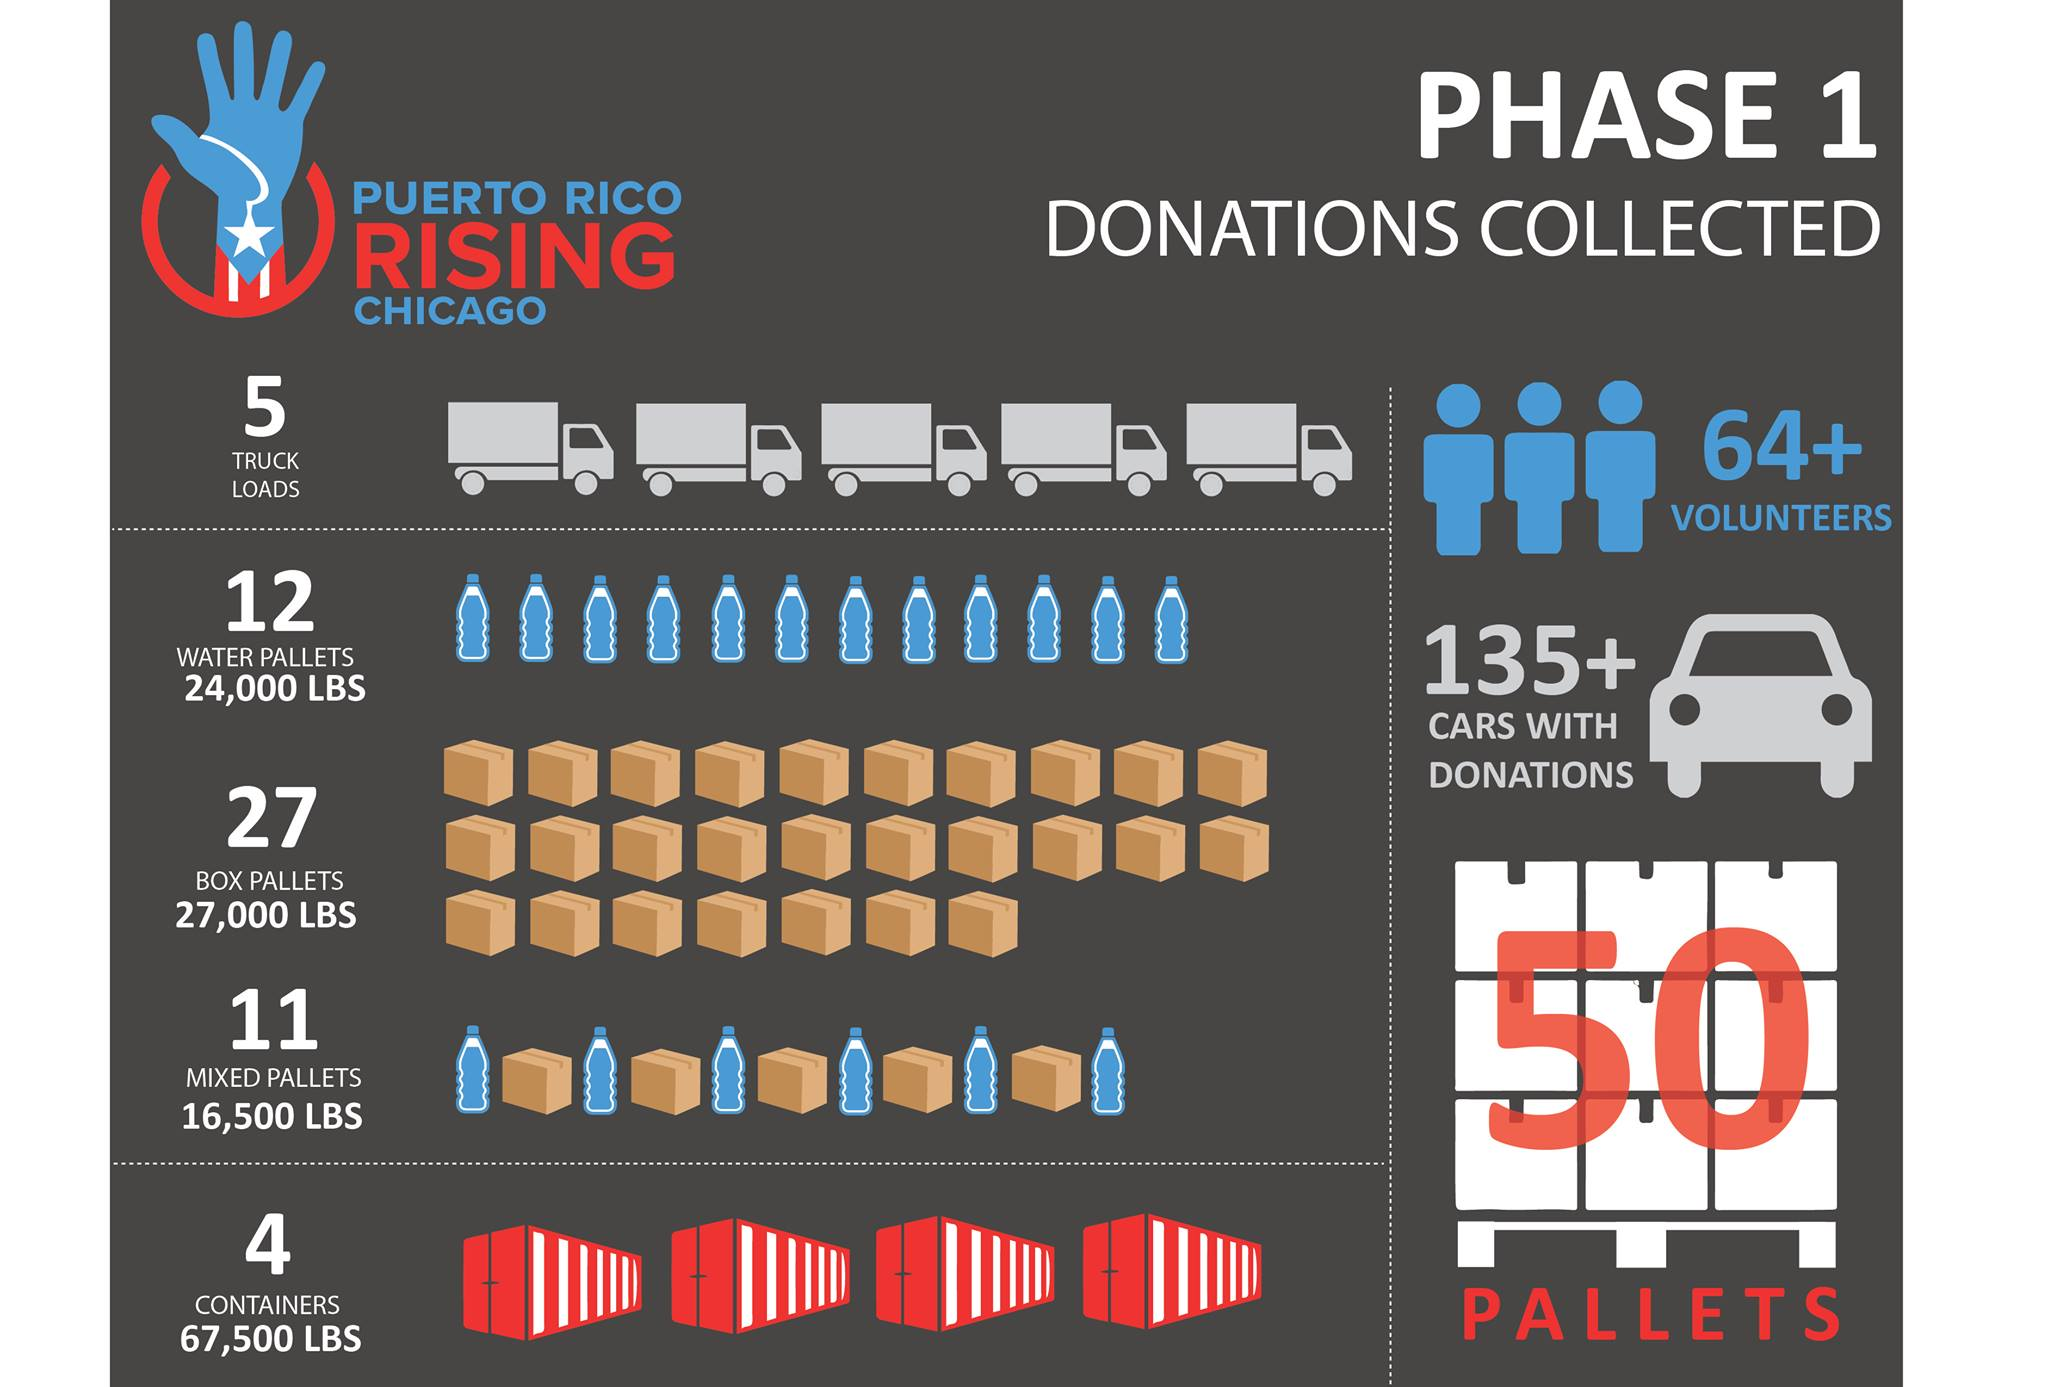 Graphic courtesy of Puerto Rico Rising Chicago